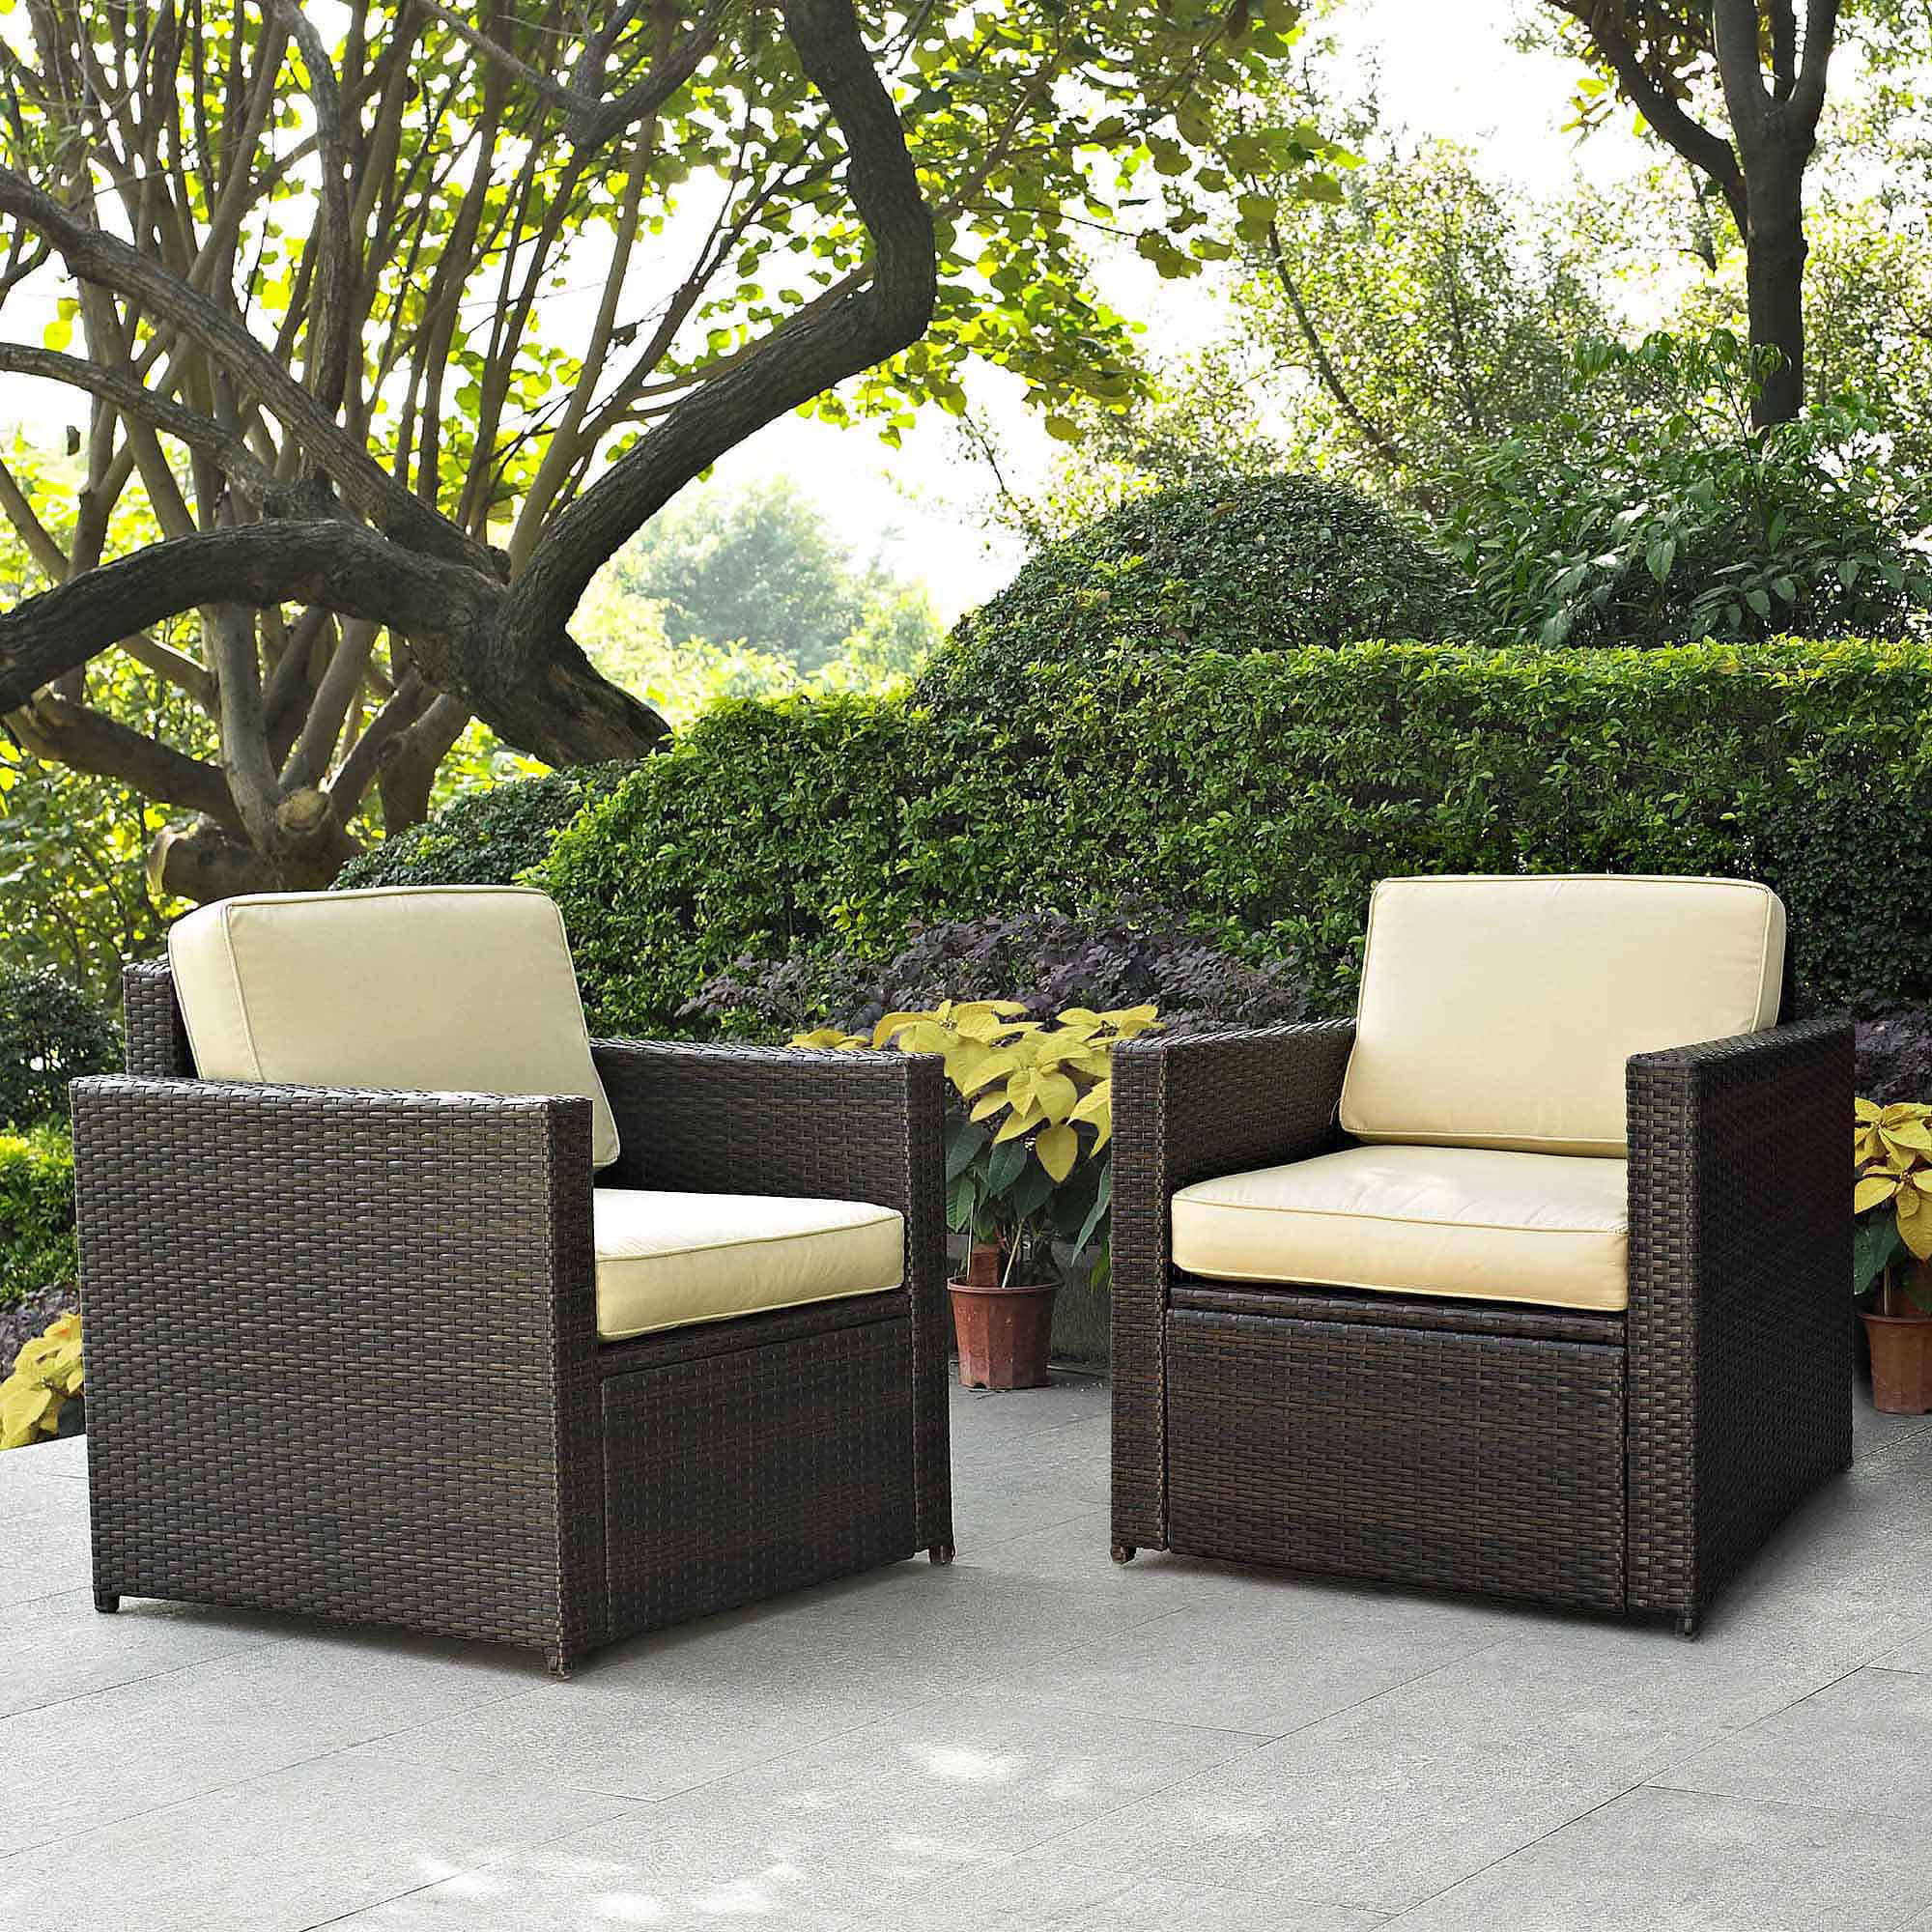 of outdoor unique furniture cheap wicker table chairs patio new